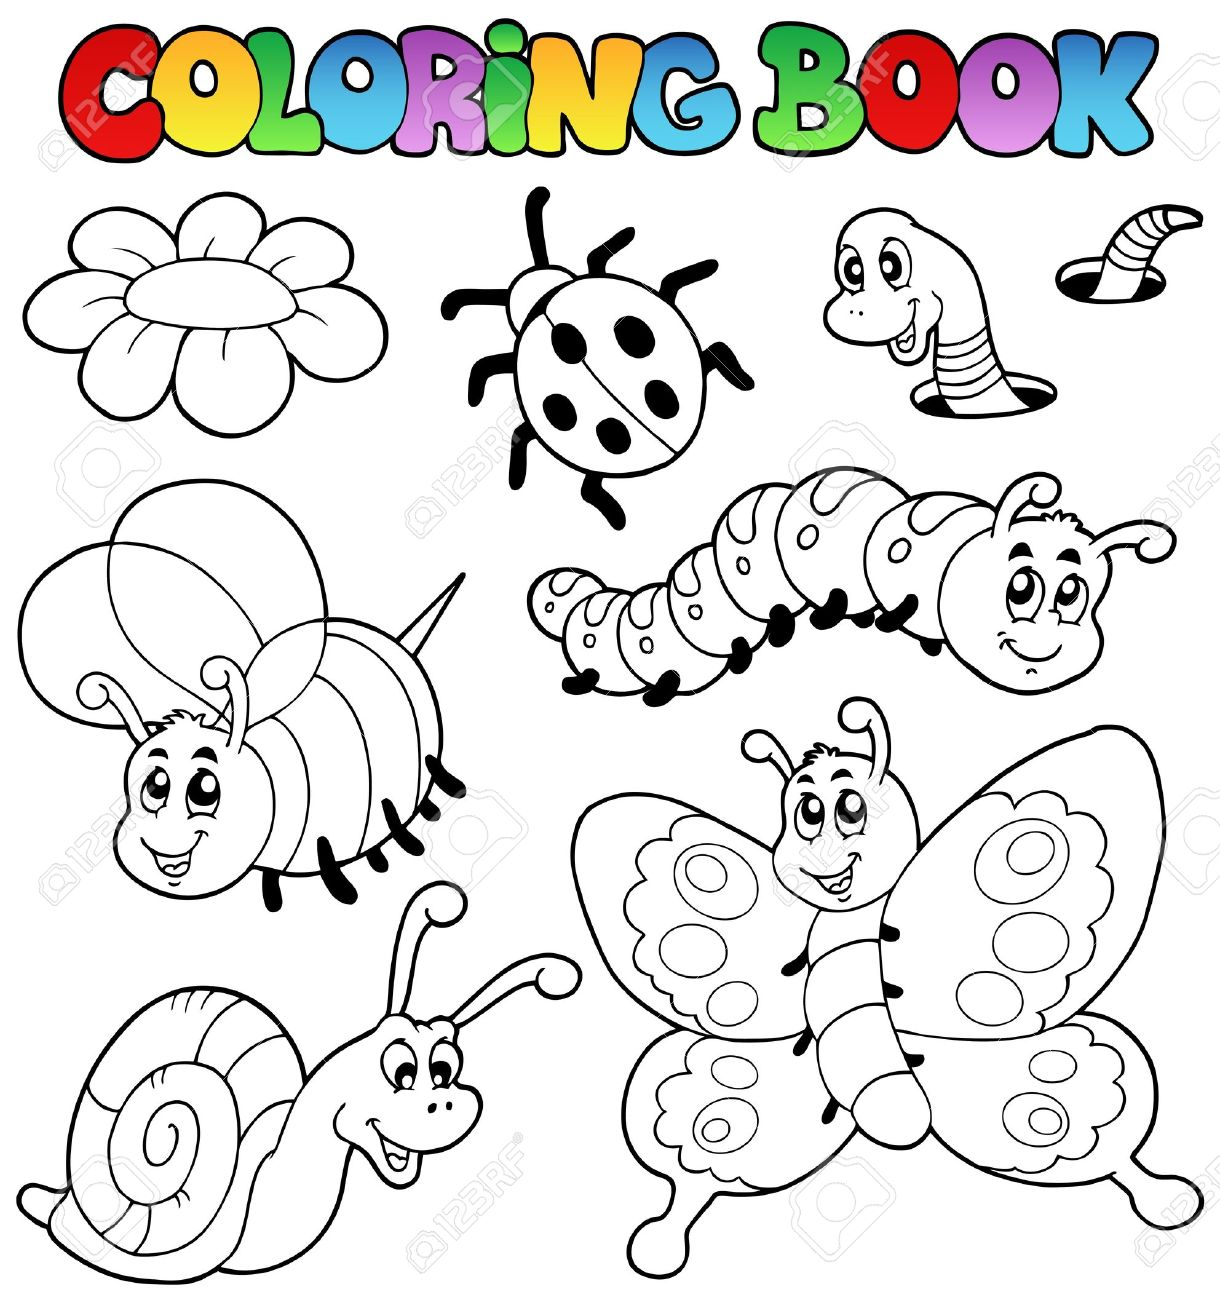 Awesome Tattoo Coloring Book Thick Michaels Coloring Books Flat Mystical Mandala Coloring Book Mickey Mouse Coloring Book Young Fairy Coloring Book SoftBlack Panther Coloring Book Beautiful Coloring Book Of Animals Images   Printable Coloring ..